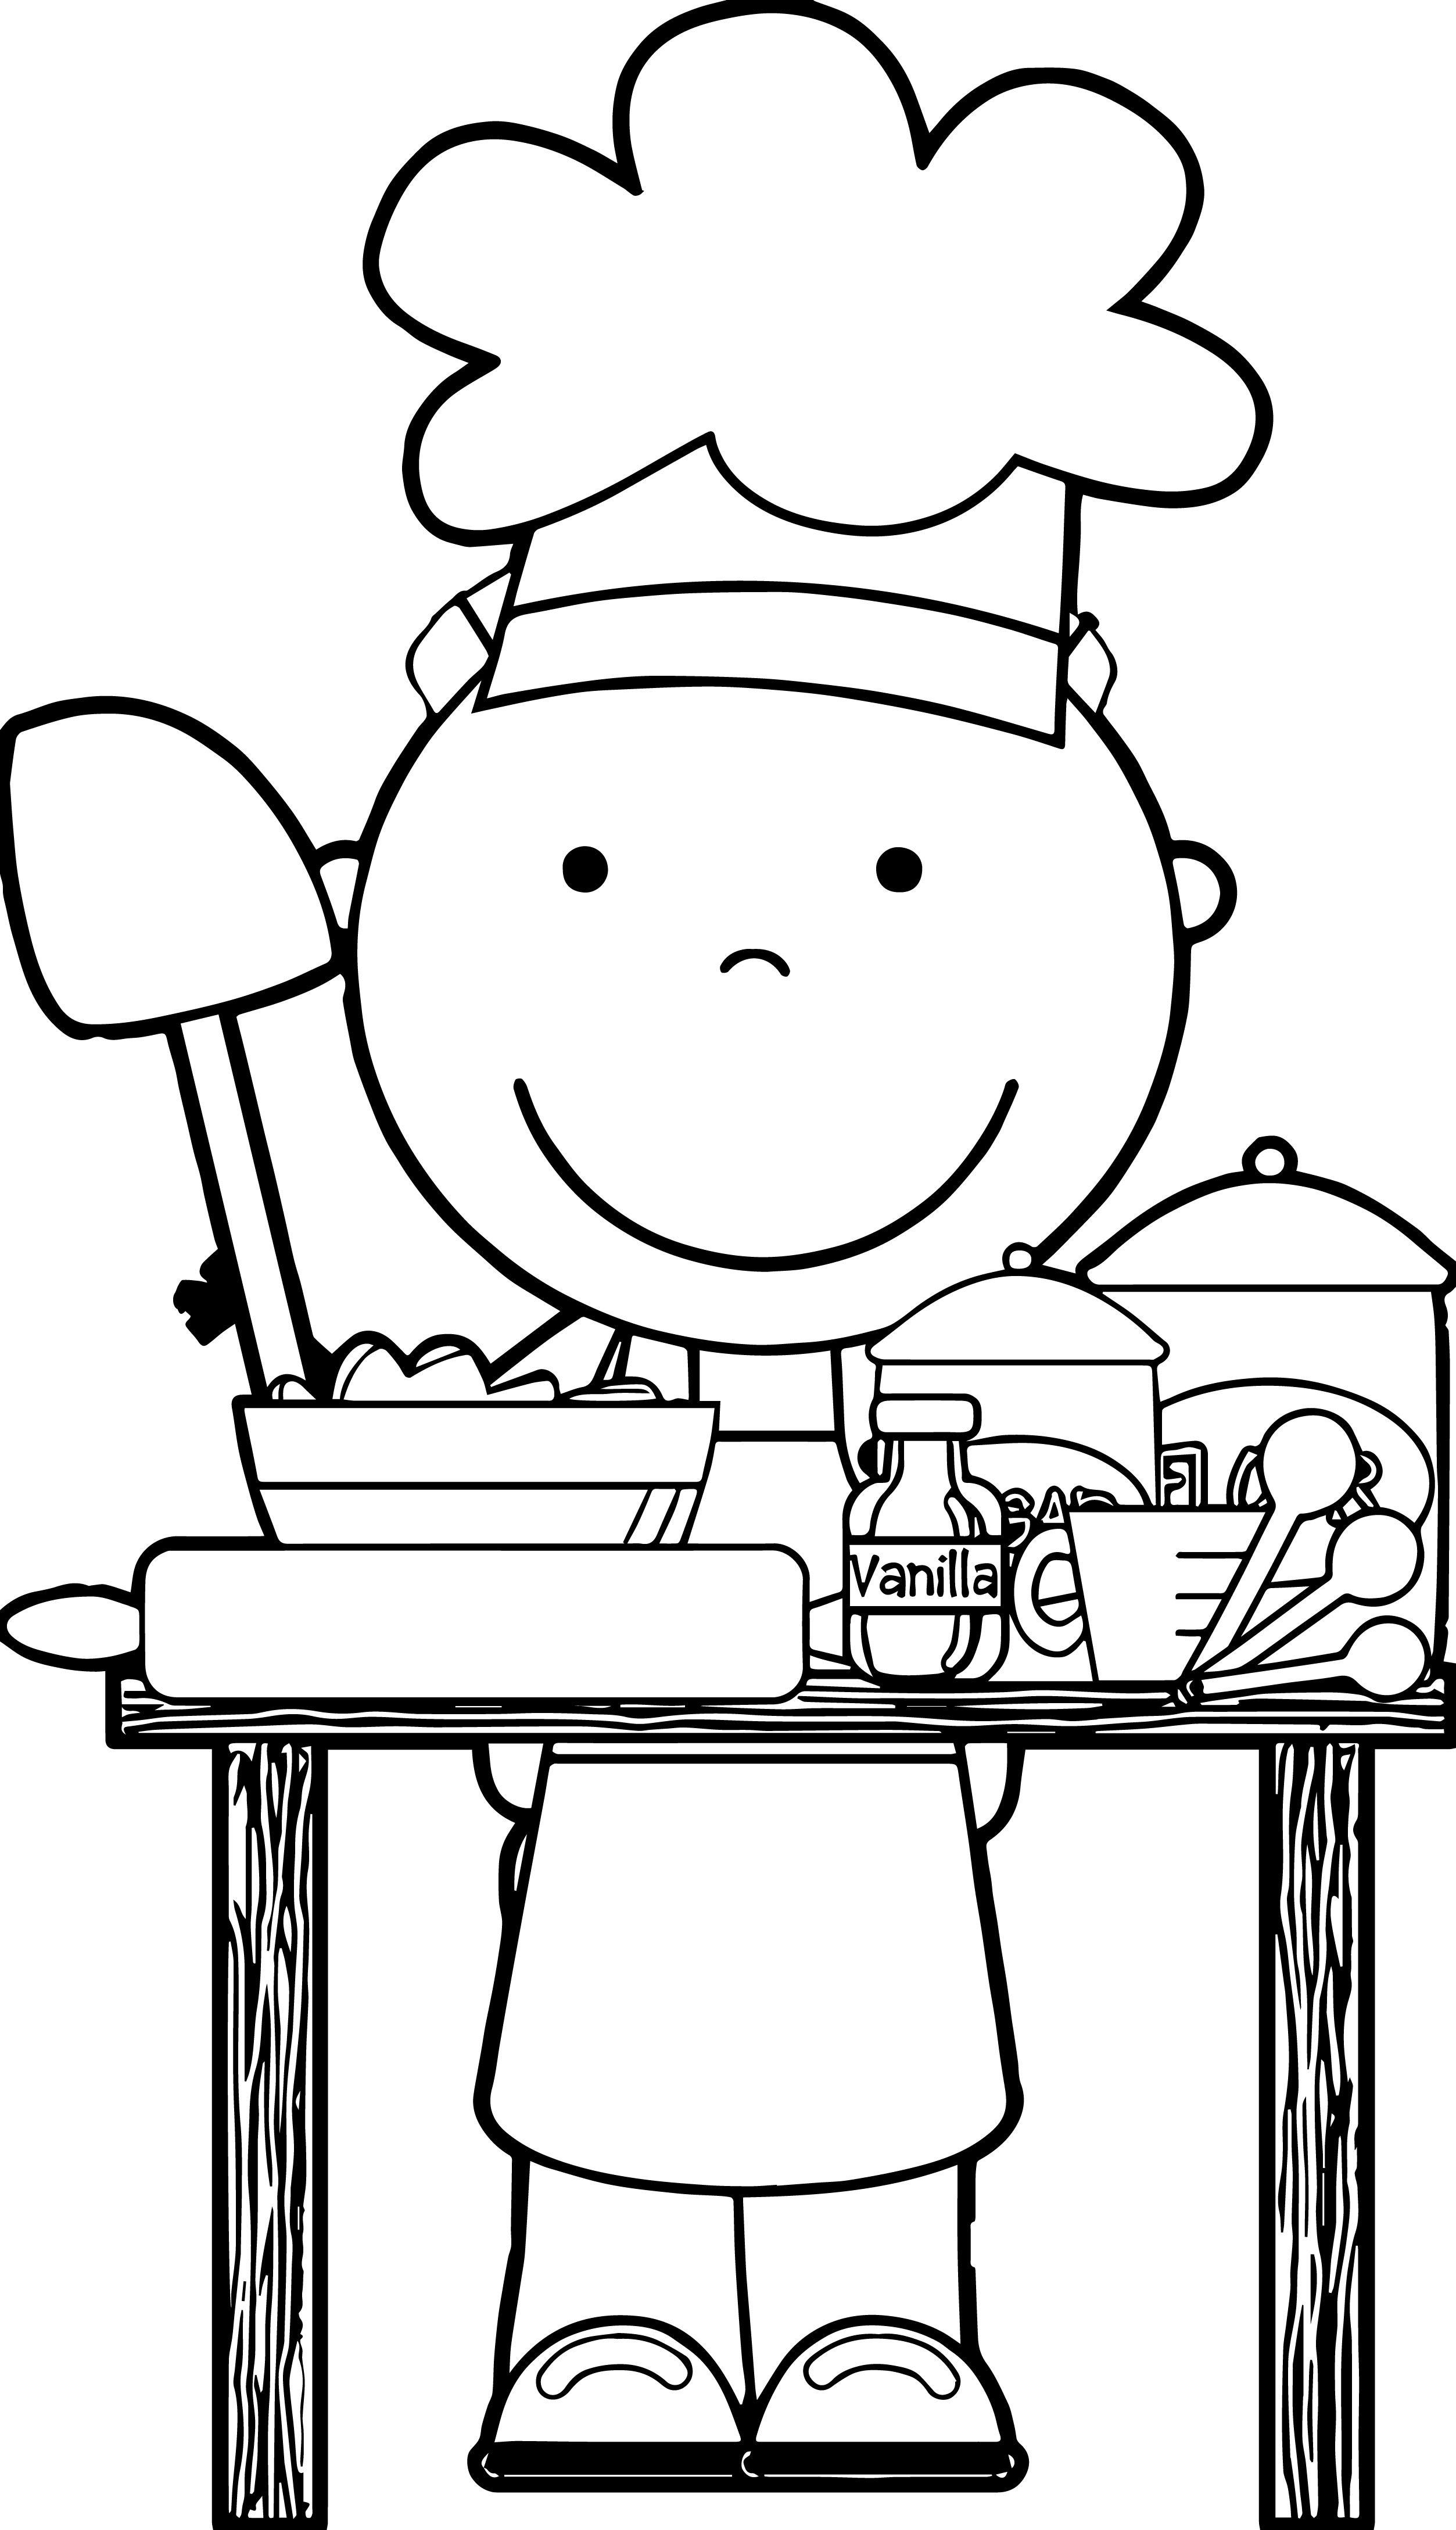 free cooking coloring pages - photo#10